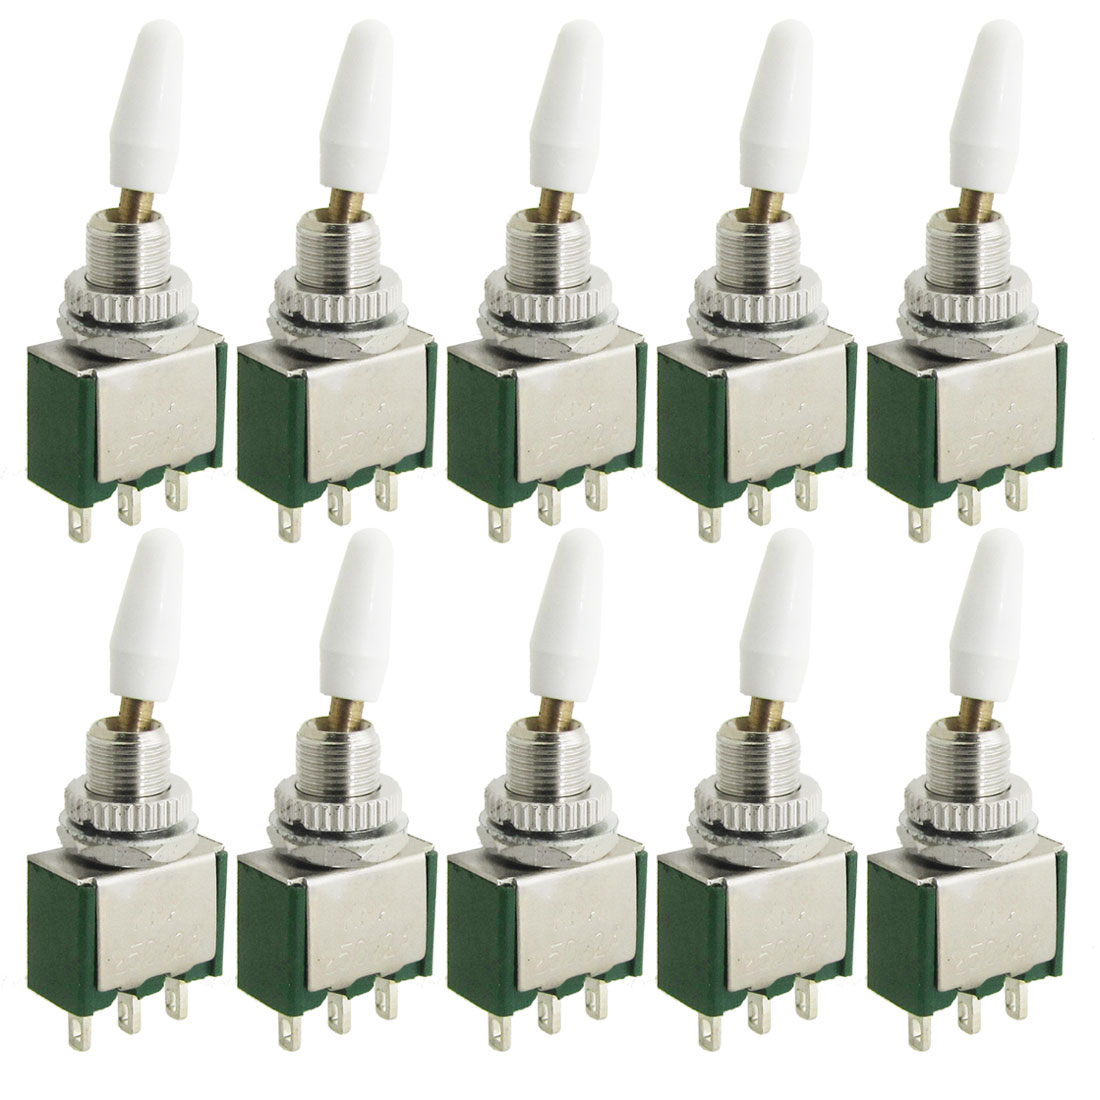 10 Pcs AC 250V 2A 3 Terminals ON/ON 2 Position SPDT Toggle Switch